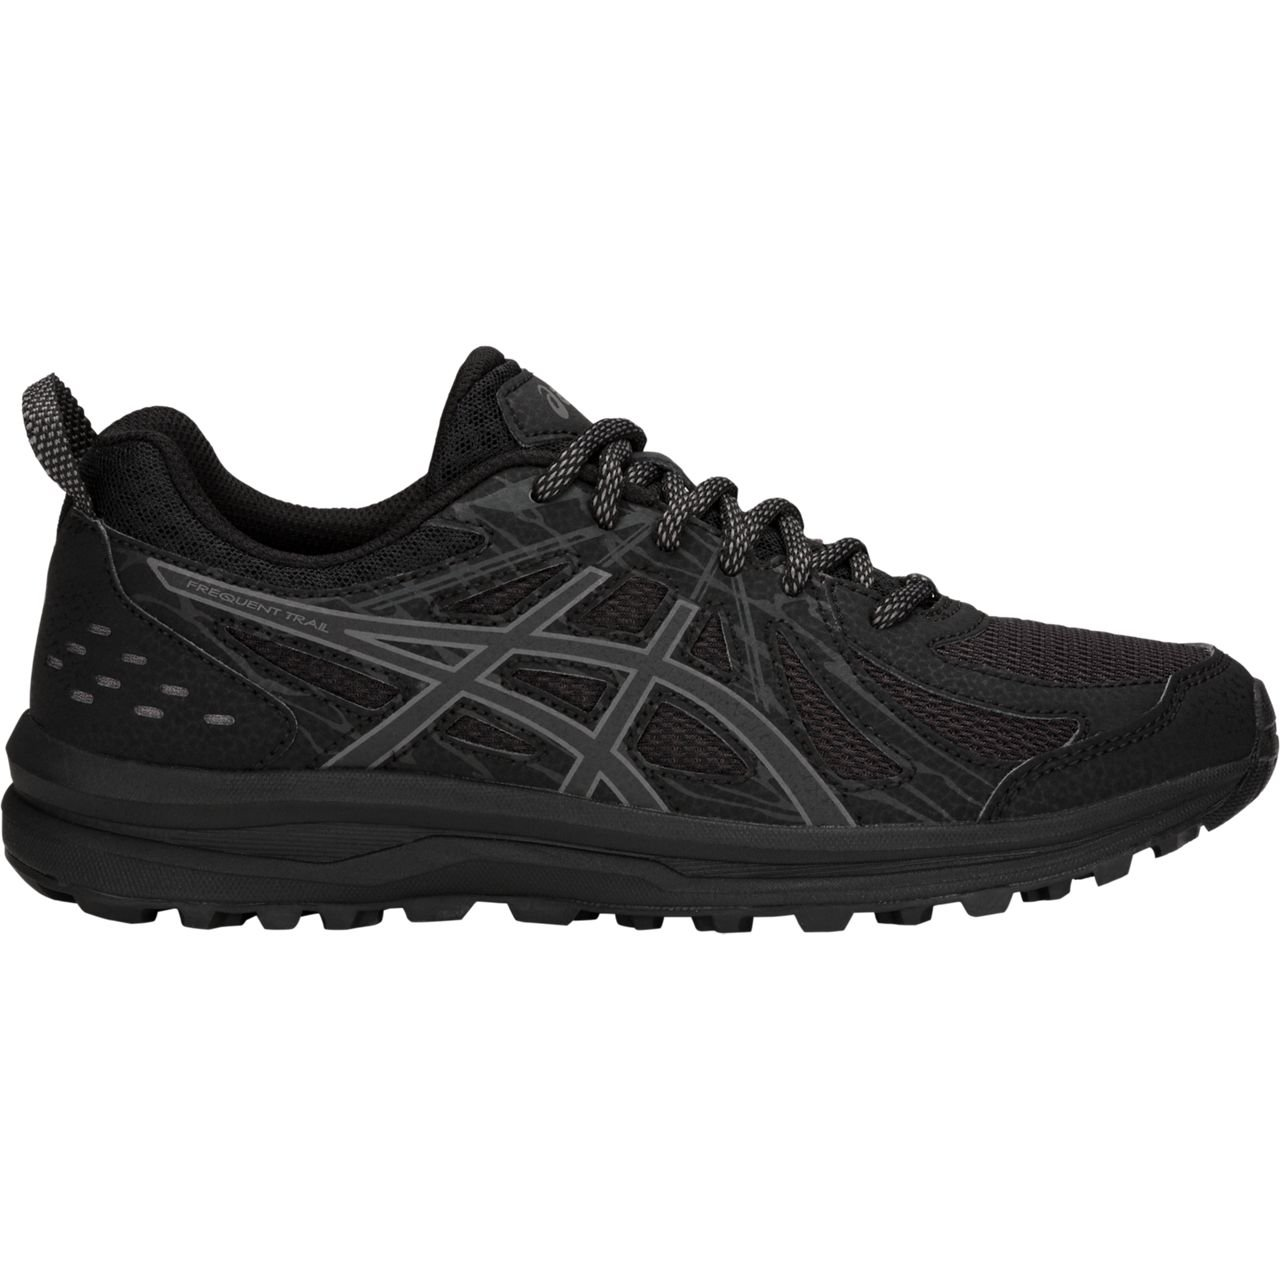 ASICS Women's Frequent Trail Running Shoe B07884L2B5 6 D US|Black/Carbon